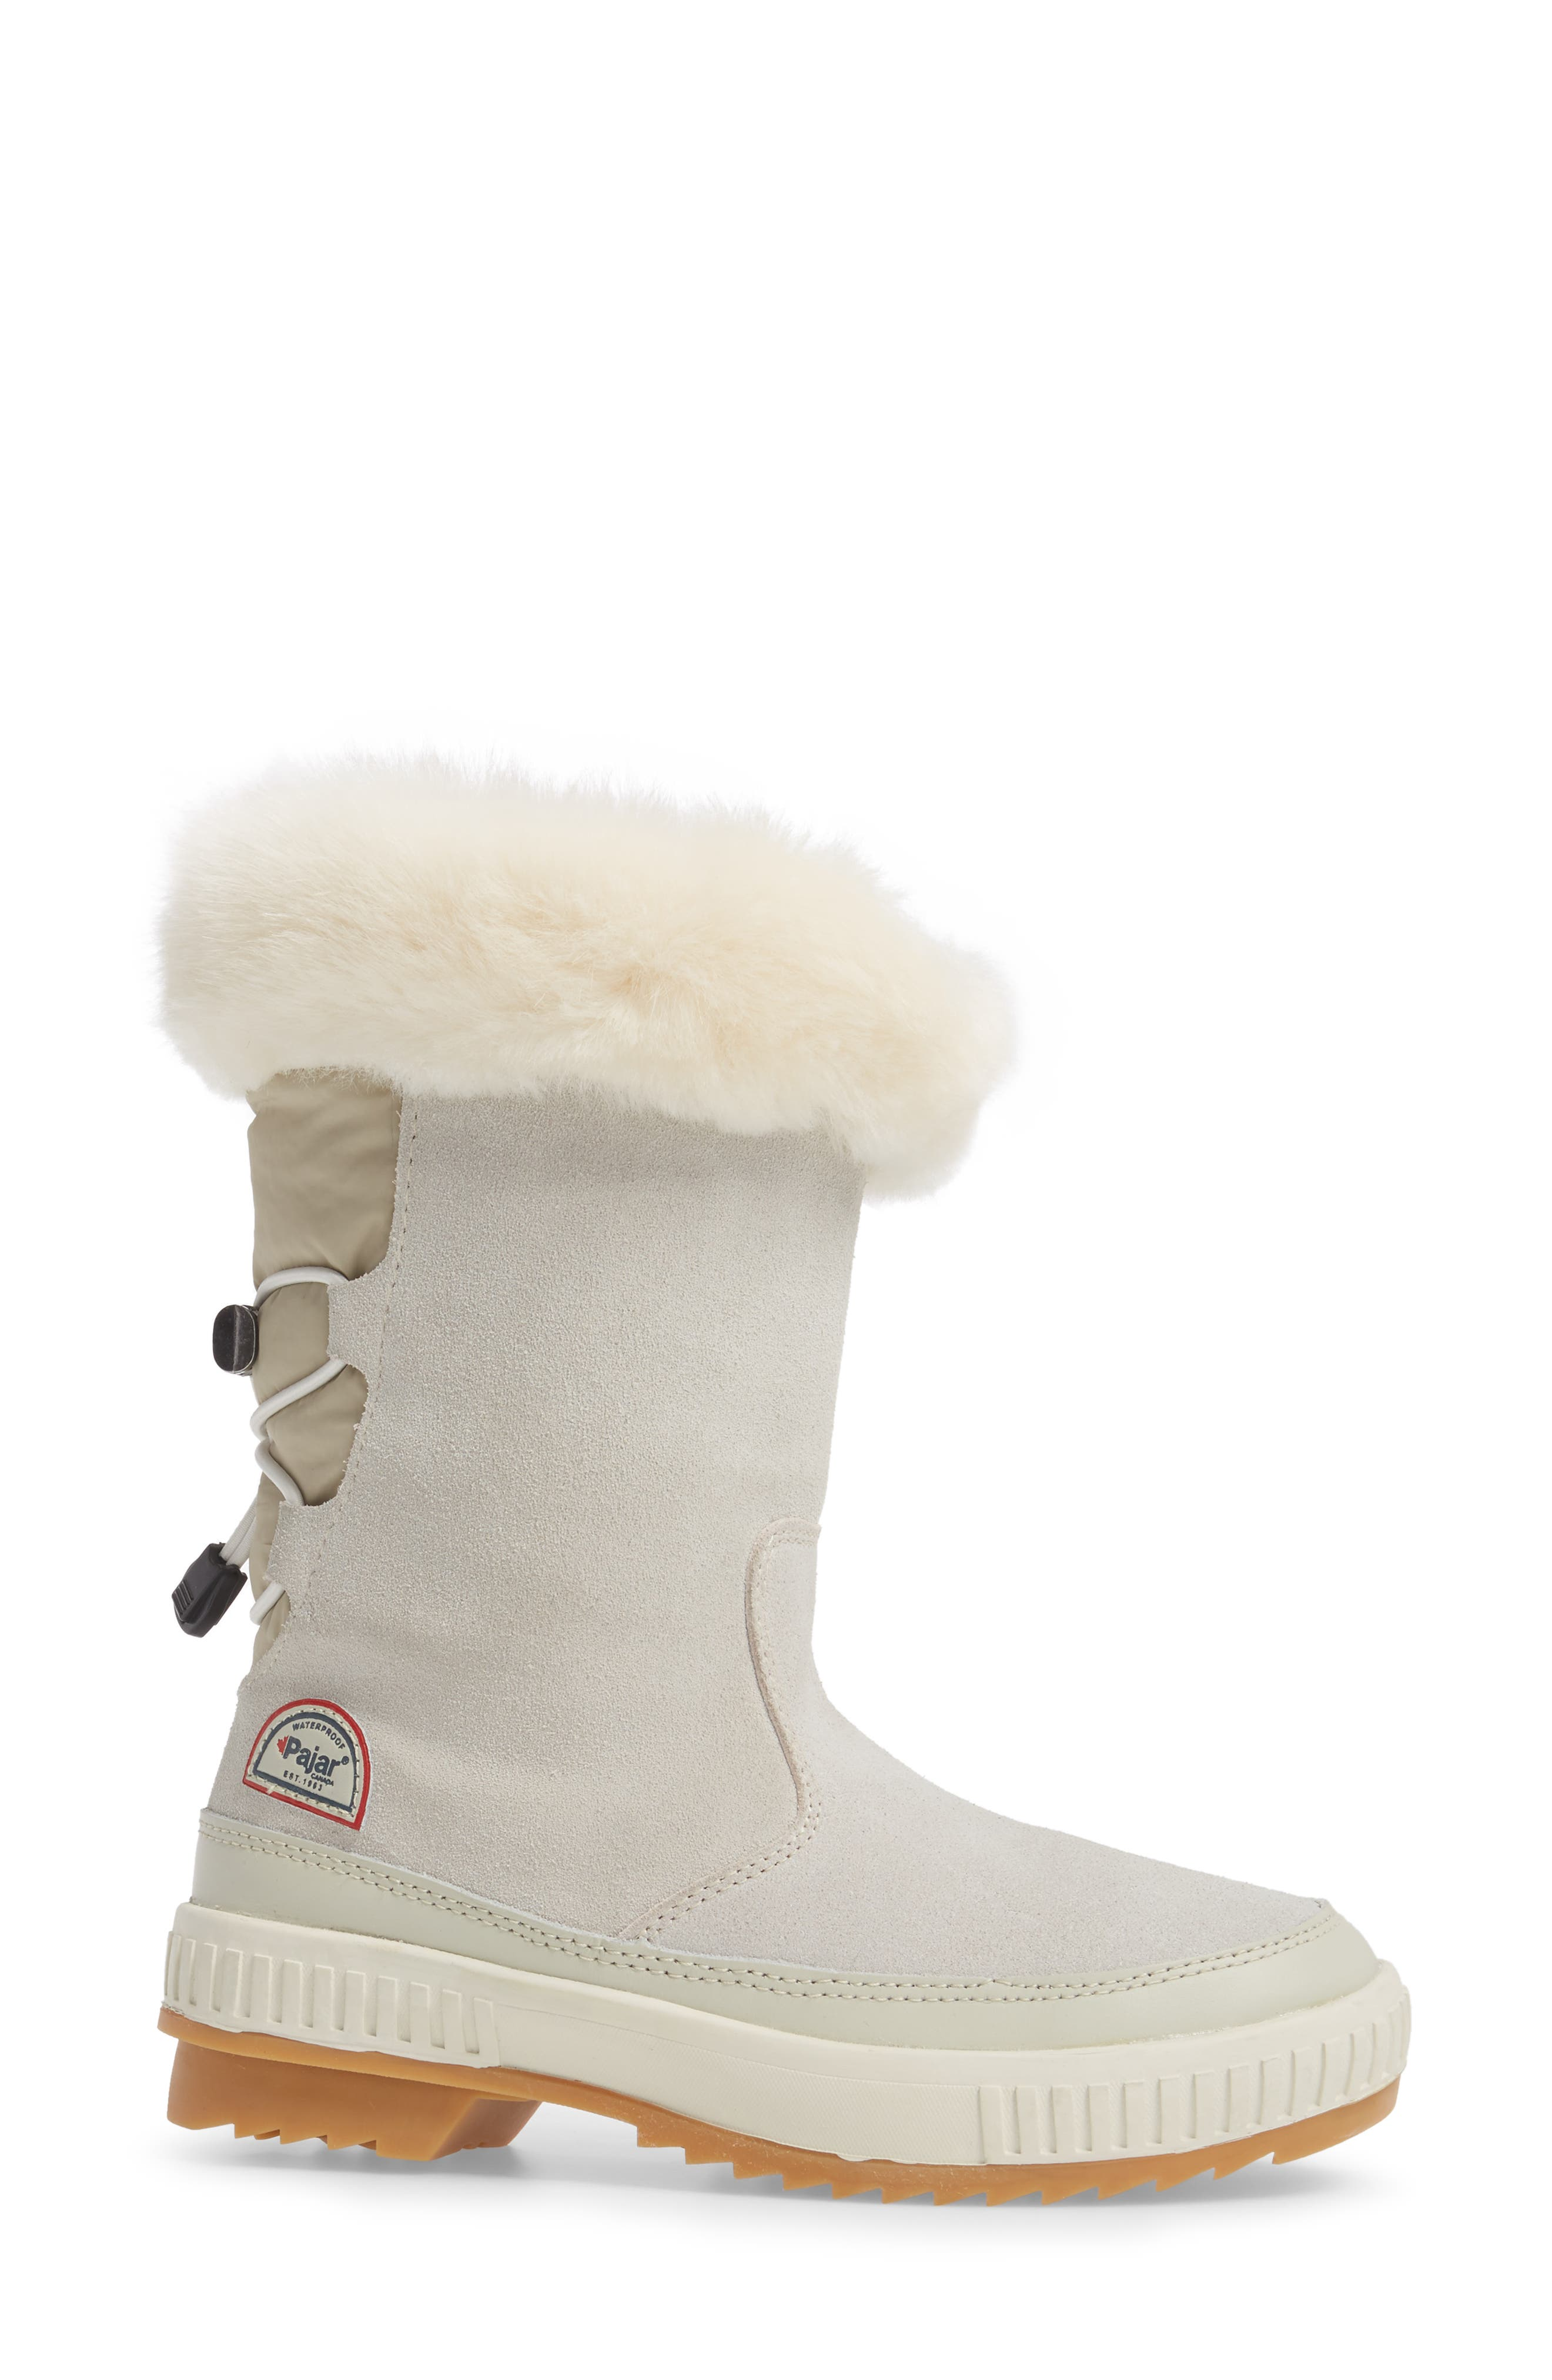 Kady Waterproof Insulated Winter Boot with Plush Cuff,                             Alternate thumbnail 3, color,                             100